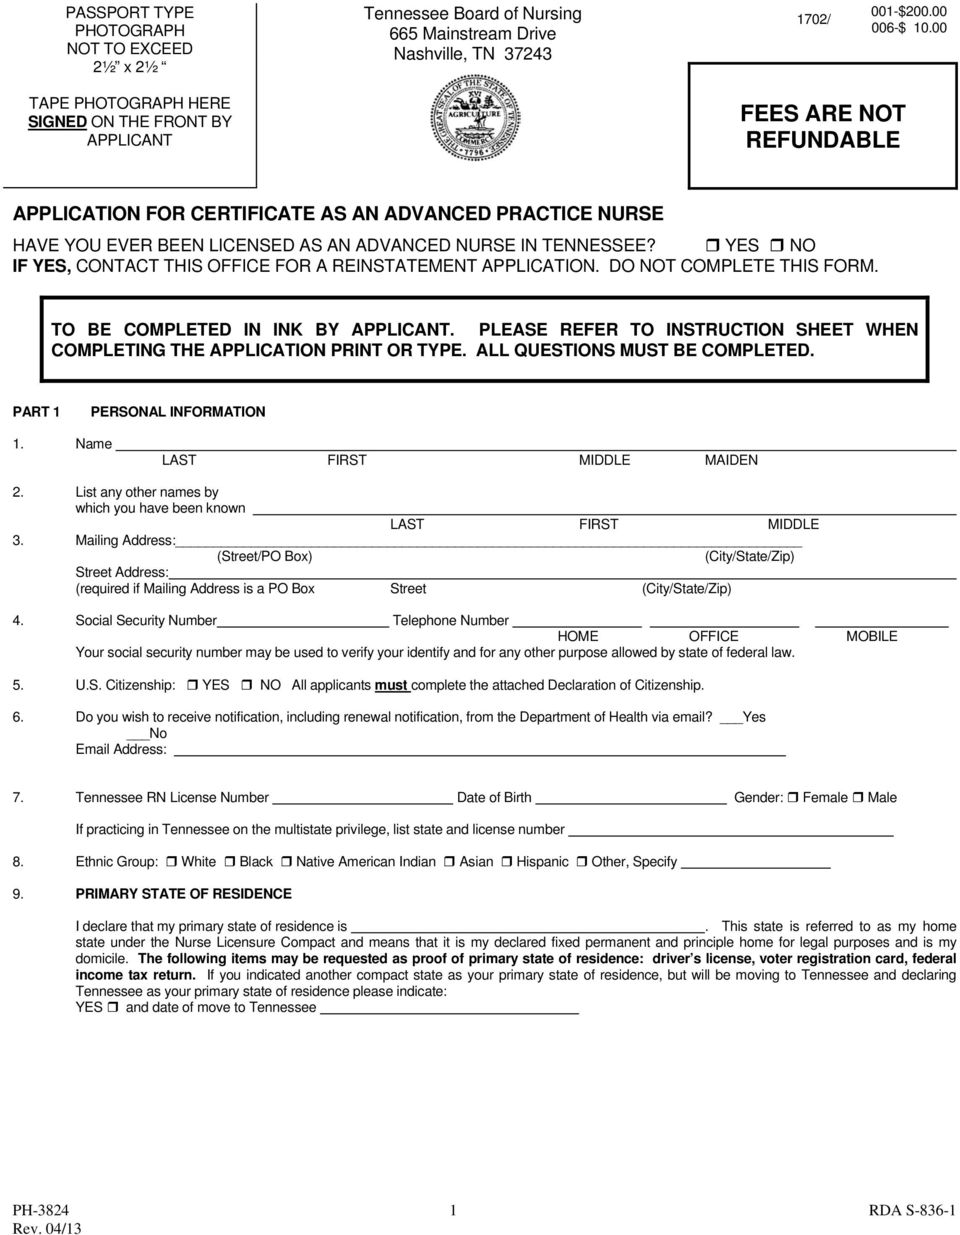 TENNESSEE? YES NO IF YES, CONTACT THIS OFFICE FOR A REINSTATEMENT APPLICATION. DO NOT COMPLETE THIS FORM. TO BE COMPLETED IN INK BY APPLICANT.